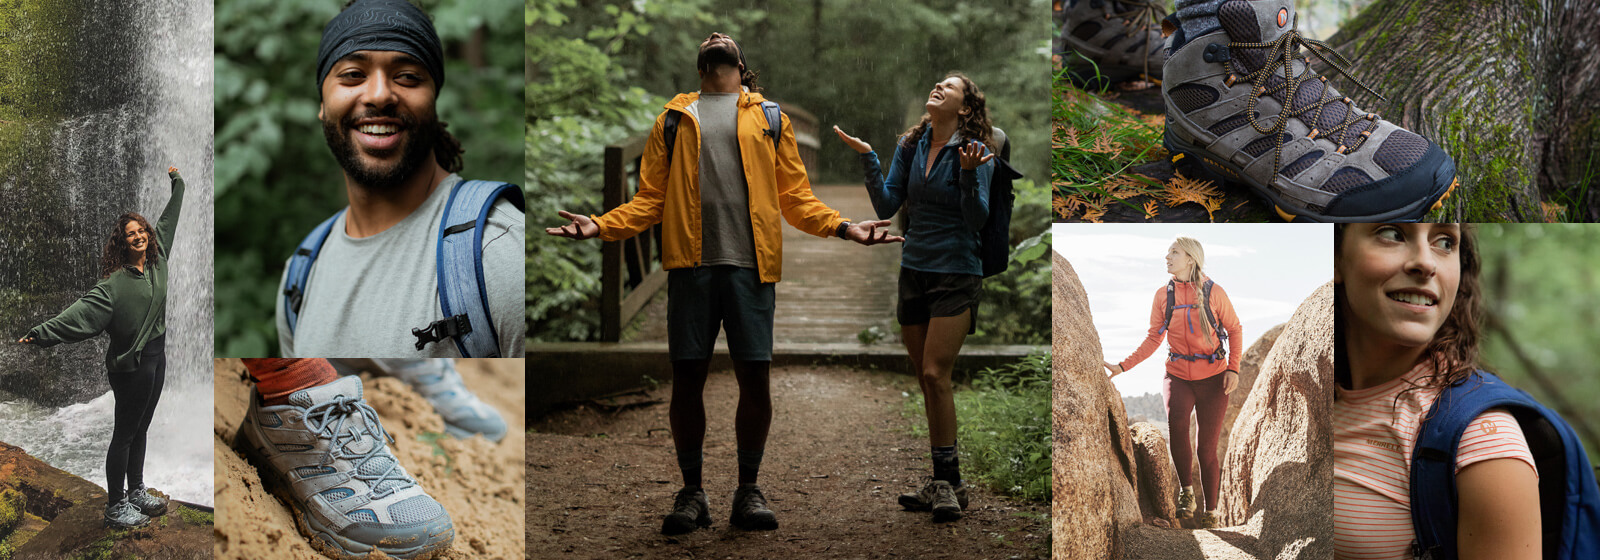 A collage of photos of the Merrell Altalight and Altalight Knit